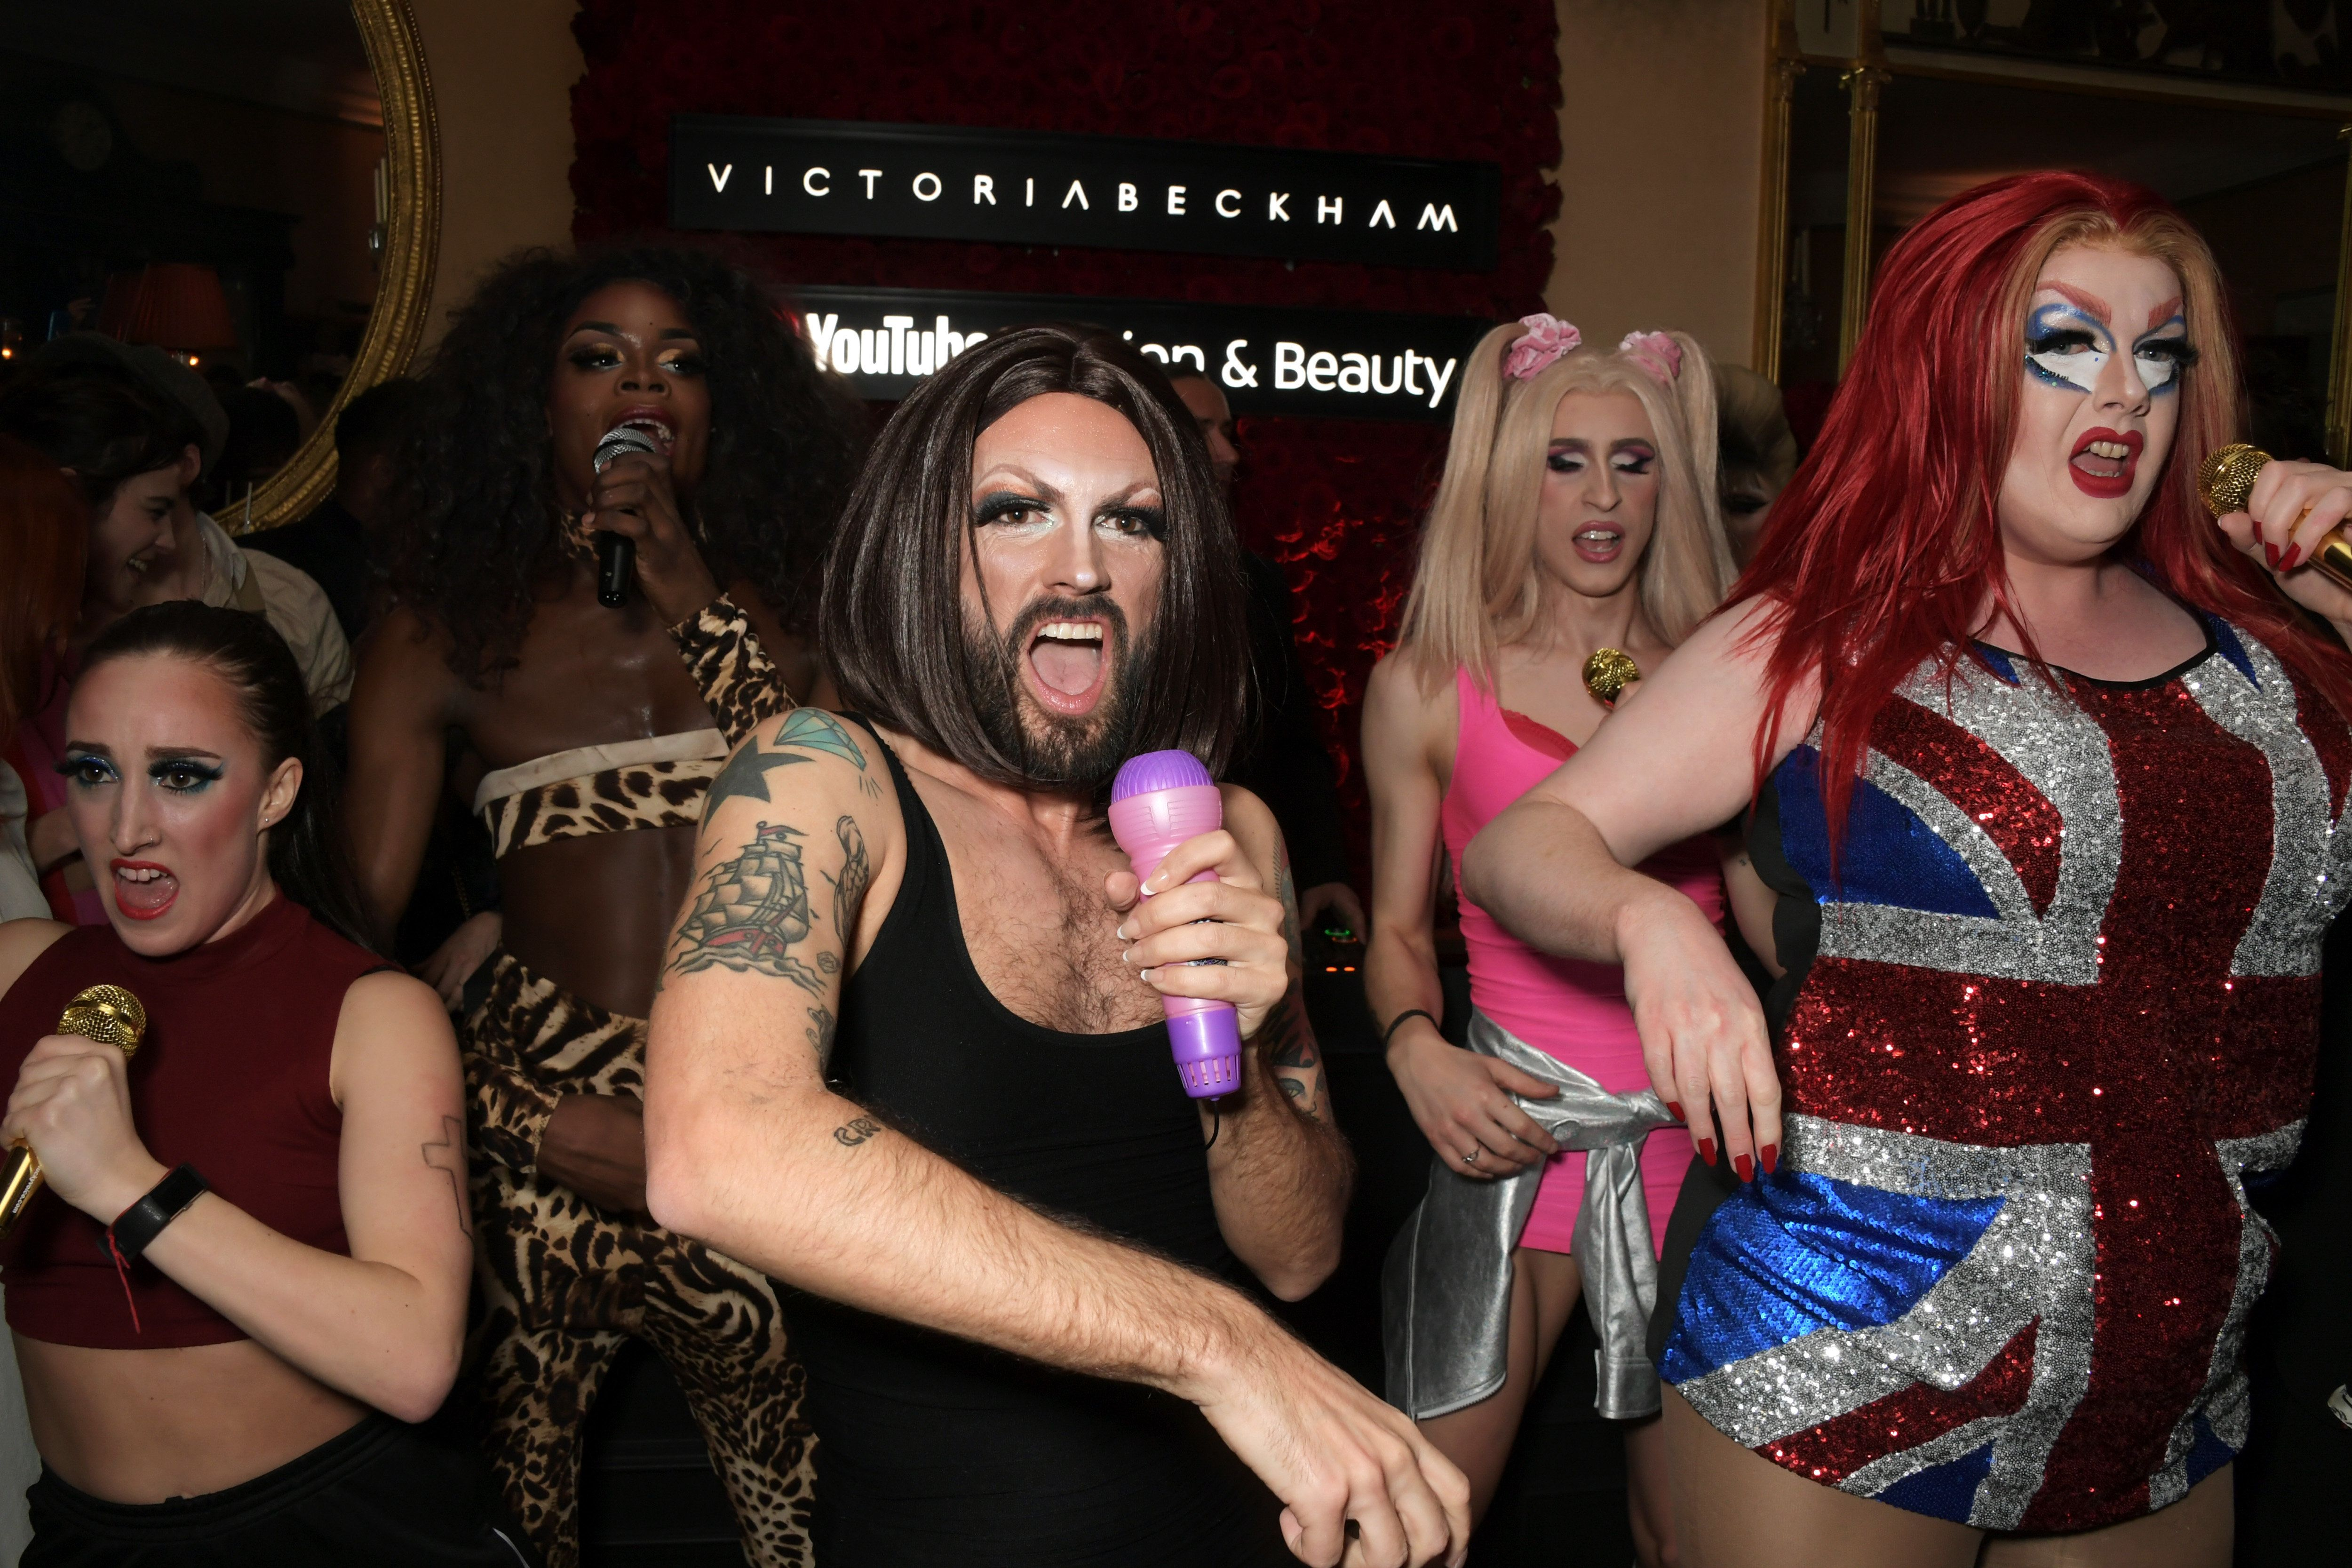 SPICE UP YOUR LIFE: Victoria Beckham Was Surprised With A Spice Girls Drag Act At Her London Fashion Week